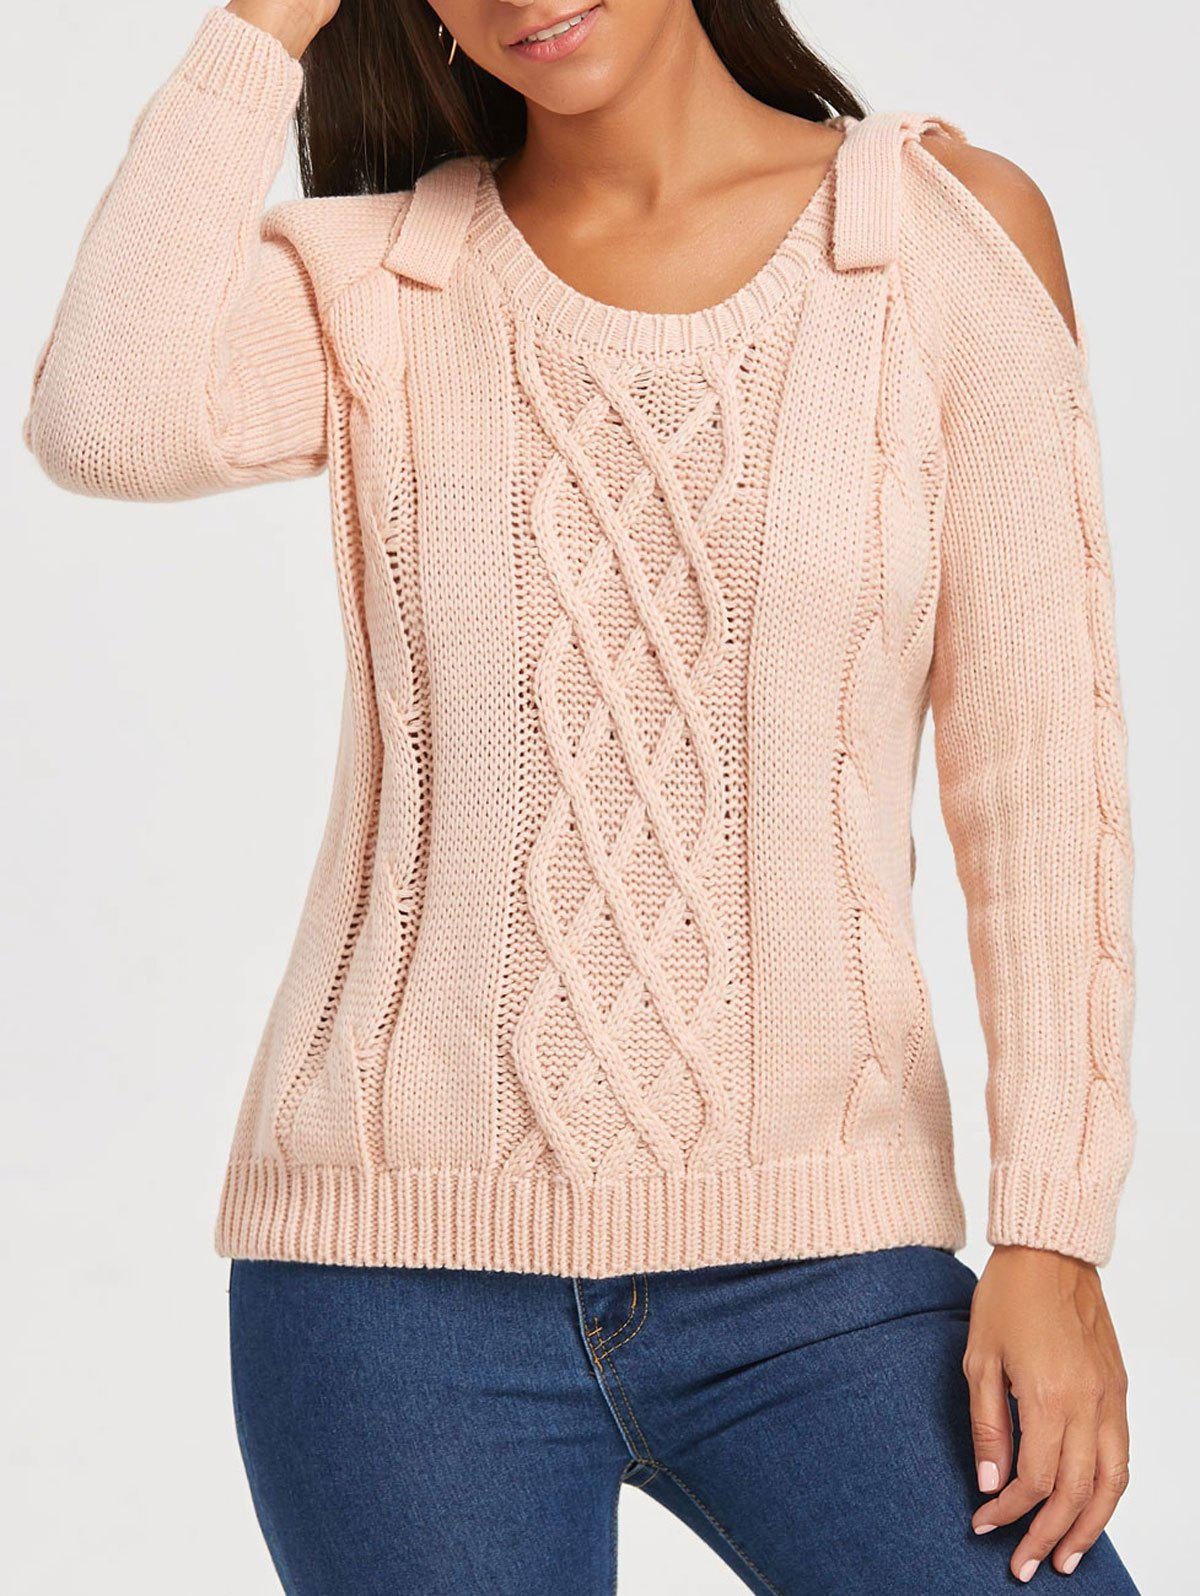 Open Shoulder Cable Knit Sweater open knit long sweater